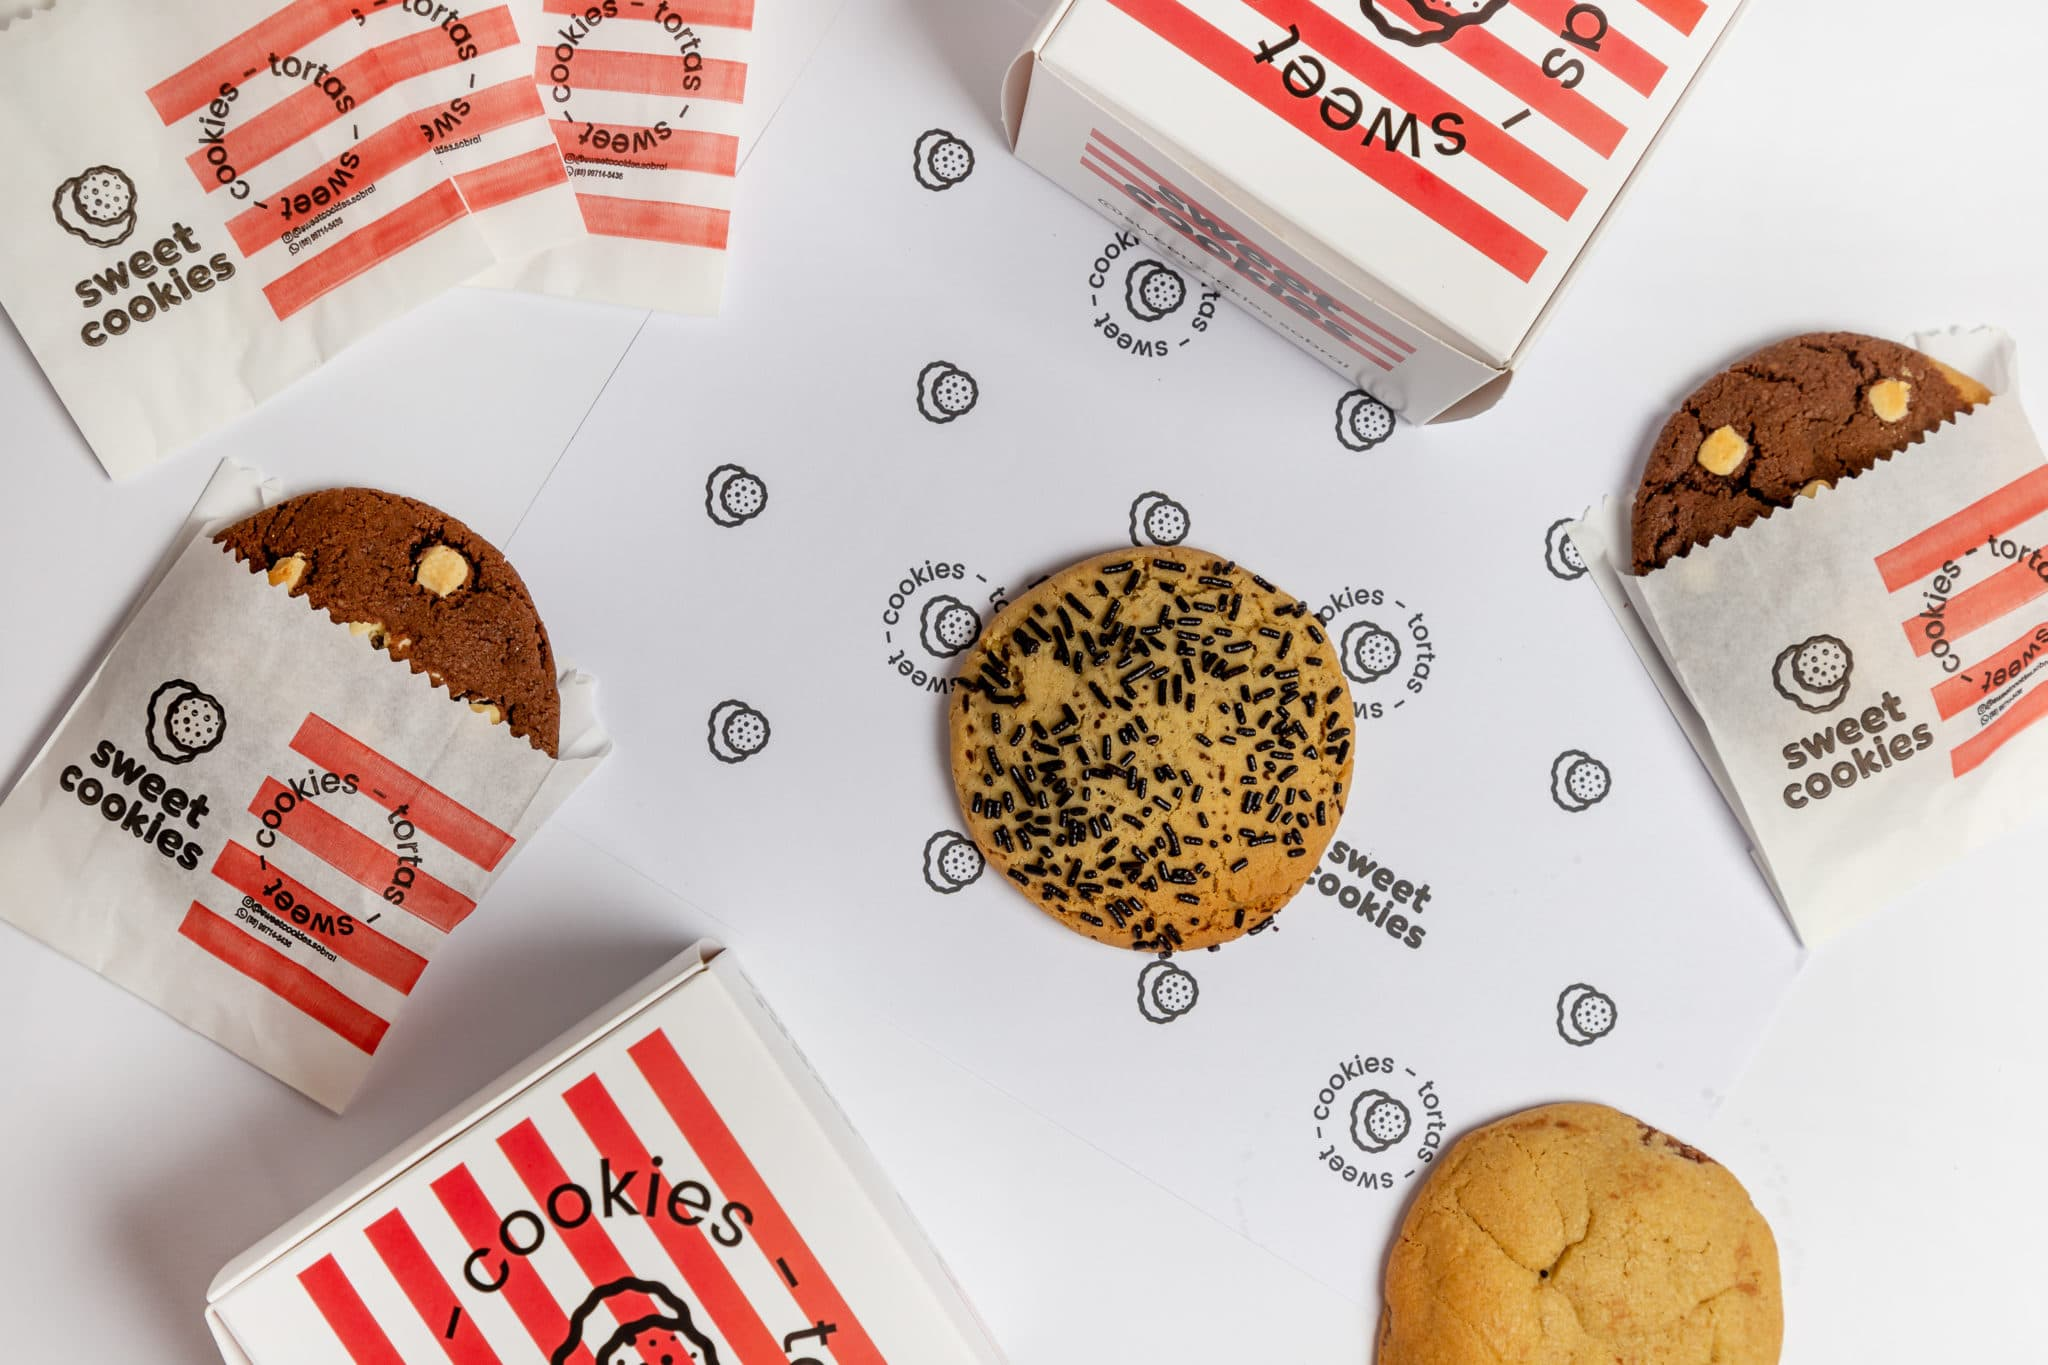 sweet cookies redesign de marca 1